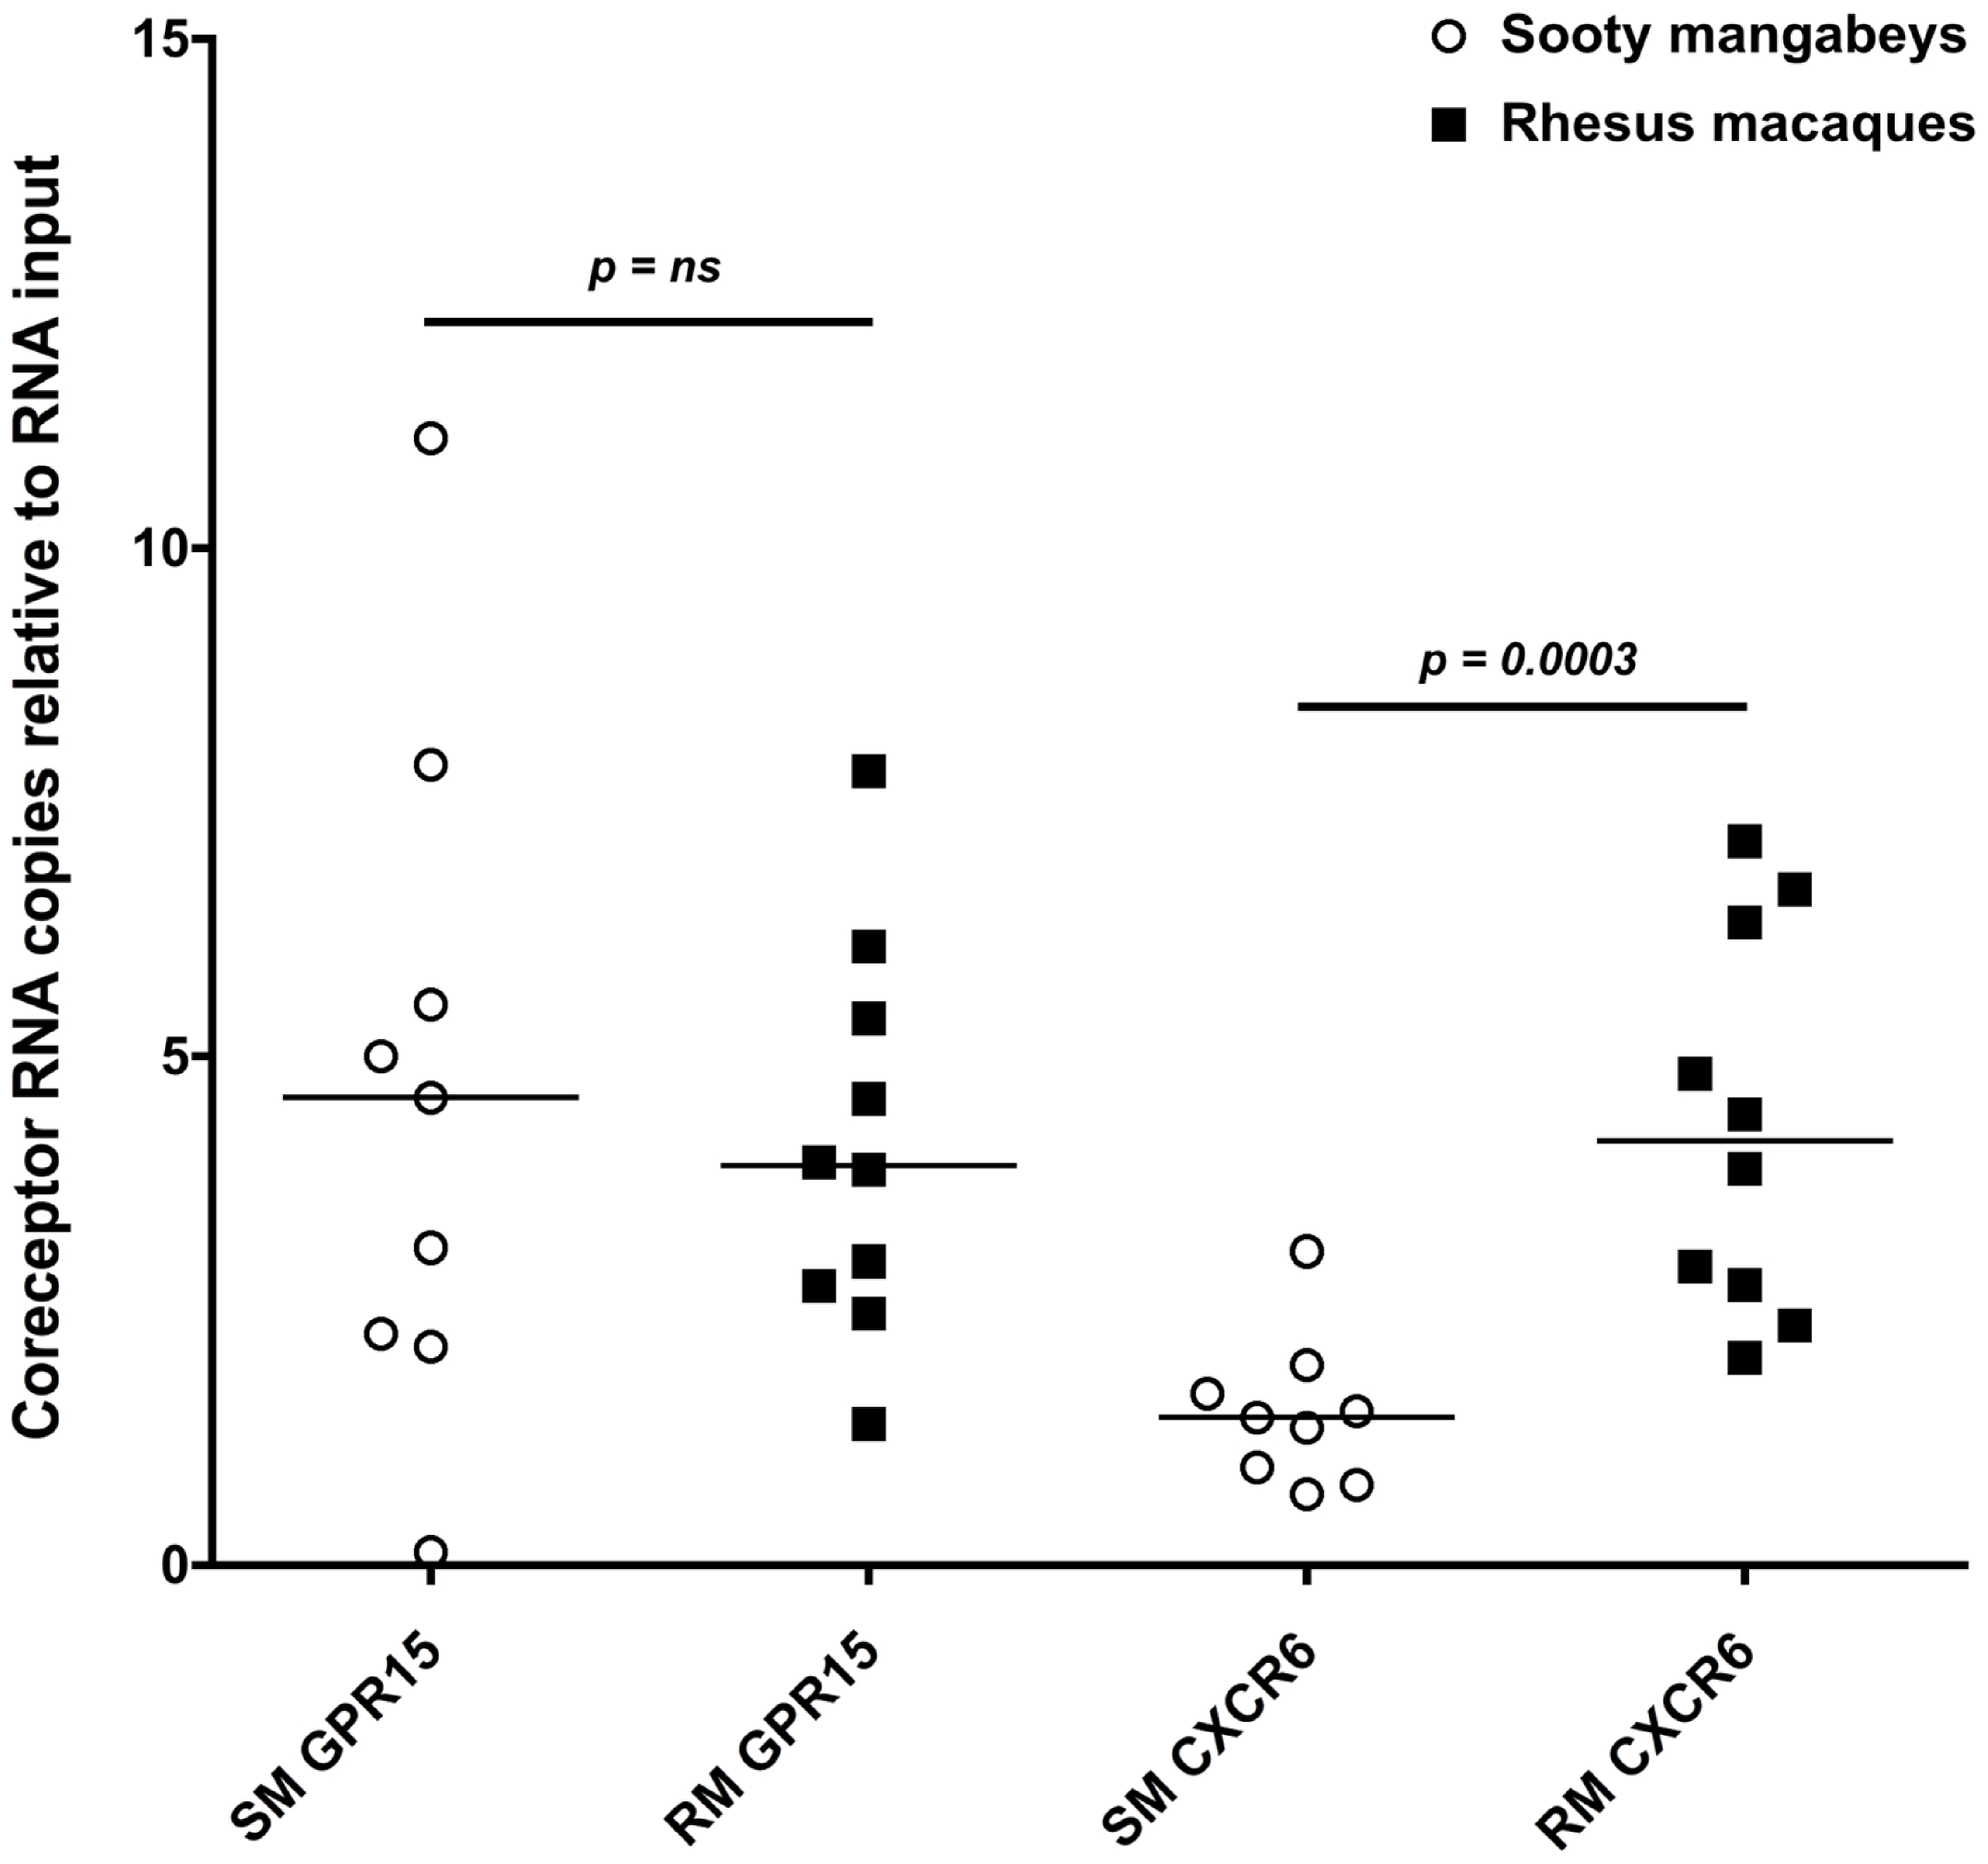 Alternative coreceptor expression in infants SMs and RMs.